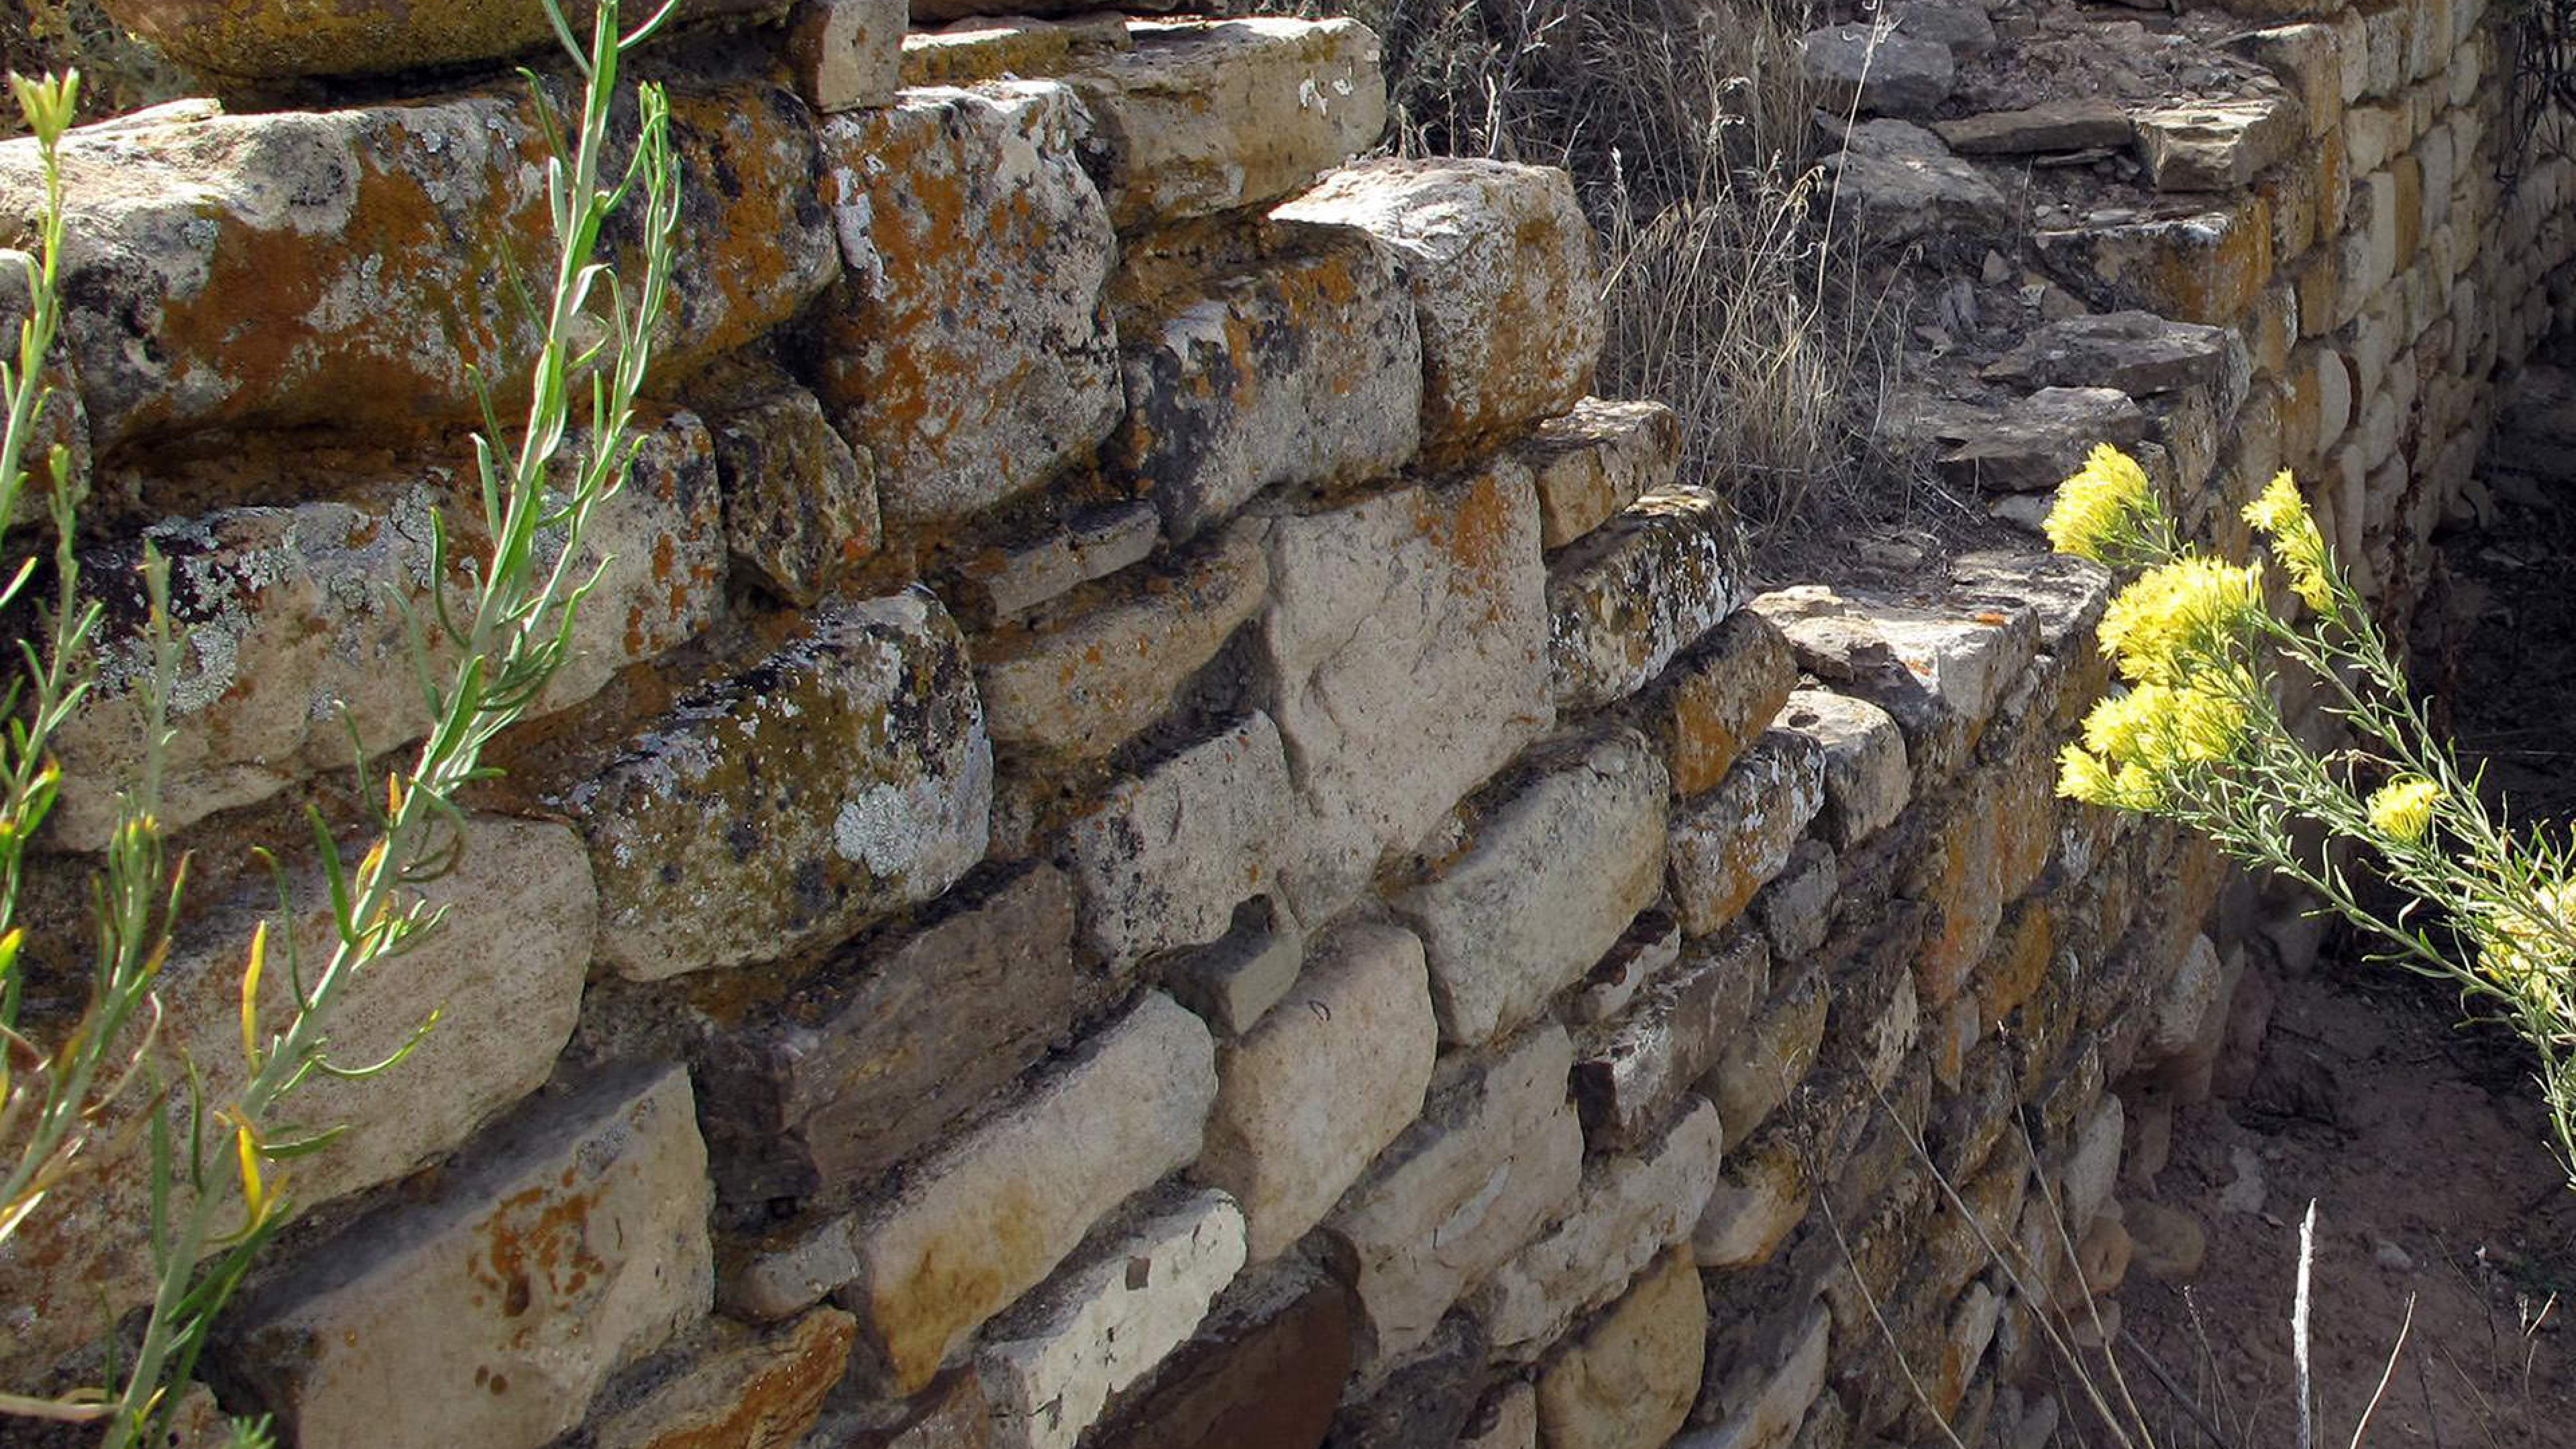 Image of stone wall composing Yucca House National Monument